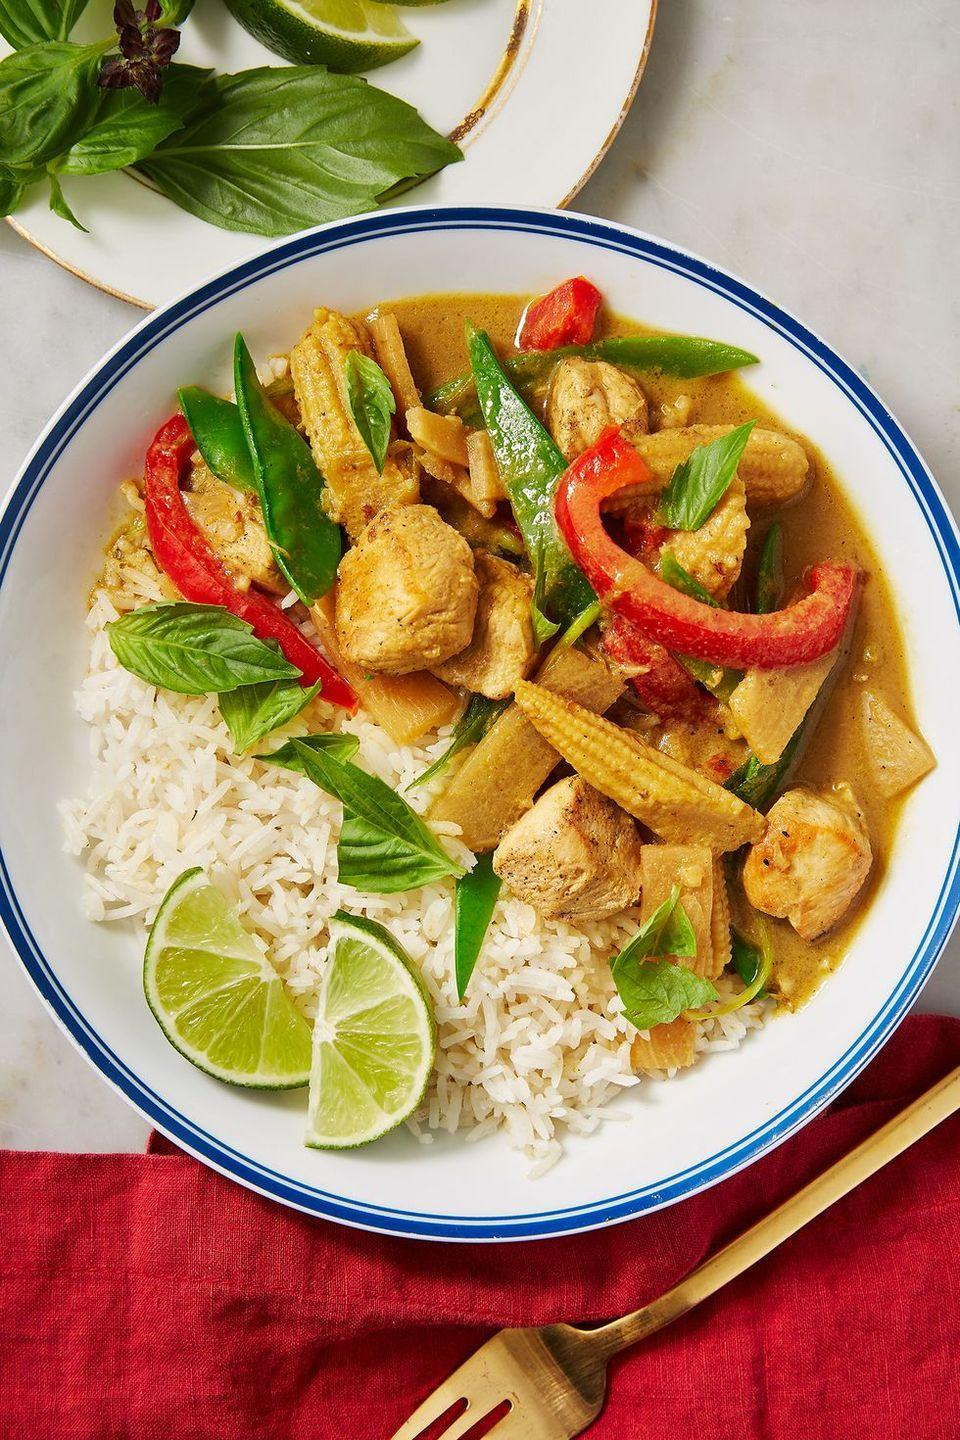 """<p>Thai green curry is a variety of curry from <a href=""""https://www.delish.com/uk/cooking/recipes/g30761979/thai-food/"""" rel=""""nofollow noopener"""" target=""""_blank"""" data-ylk=""""slk:Thailand"""" class=""""link rapid-noclick-resp"""">Thailand</a> using coconut milk and fresh green chillies. </p><p>Get the <a href=""""https://www.delish.com/uk/cooking/recipes/a31011824/thai-green-curry/"""" rel=""""nofollow noopener"""" target=""""_blank"""" data-ylk=""""slk:Thai Green Curry"""" class=""""link rapid-noclick-resp"""">Thai Green Curry</a> recipe.</p>"""